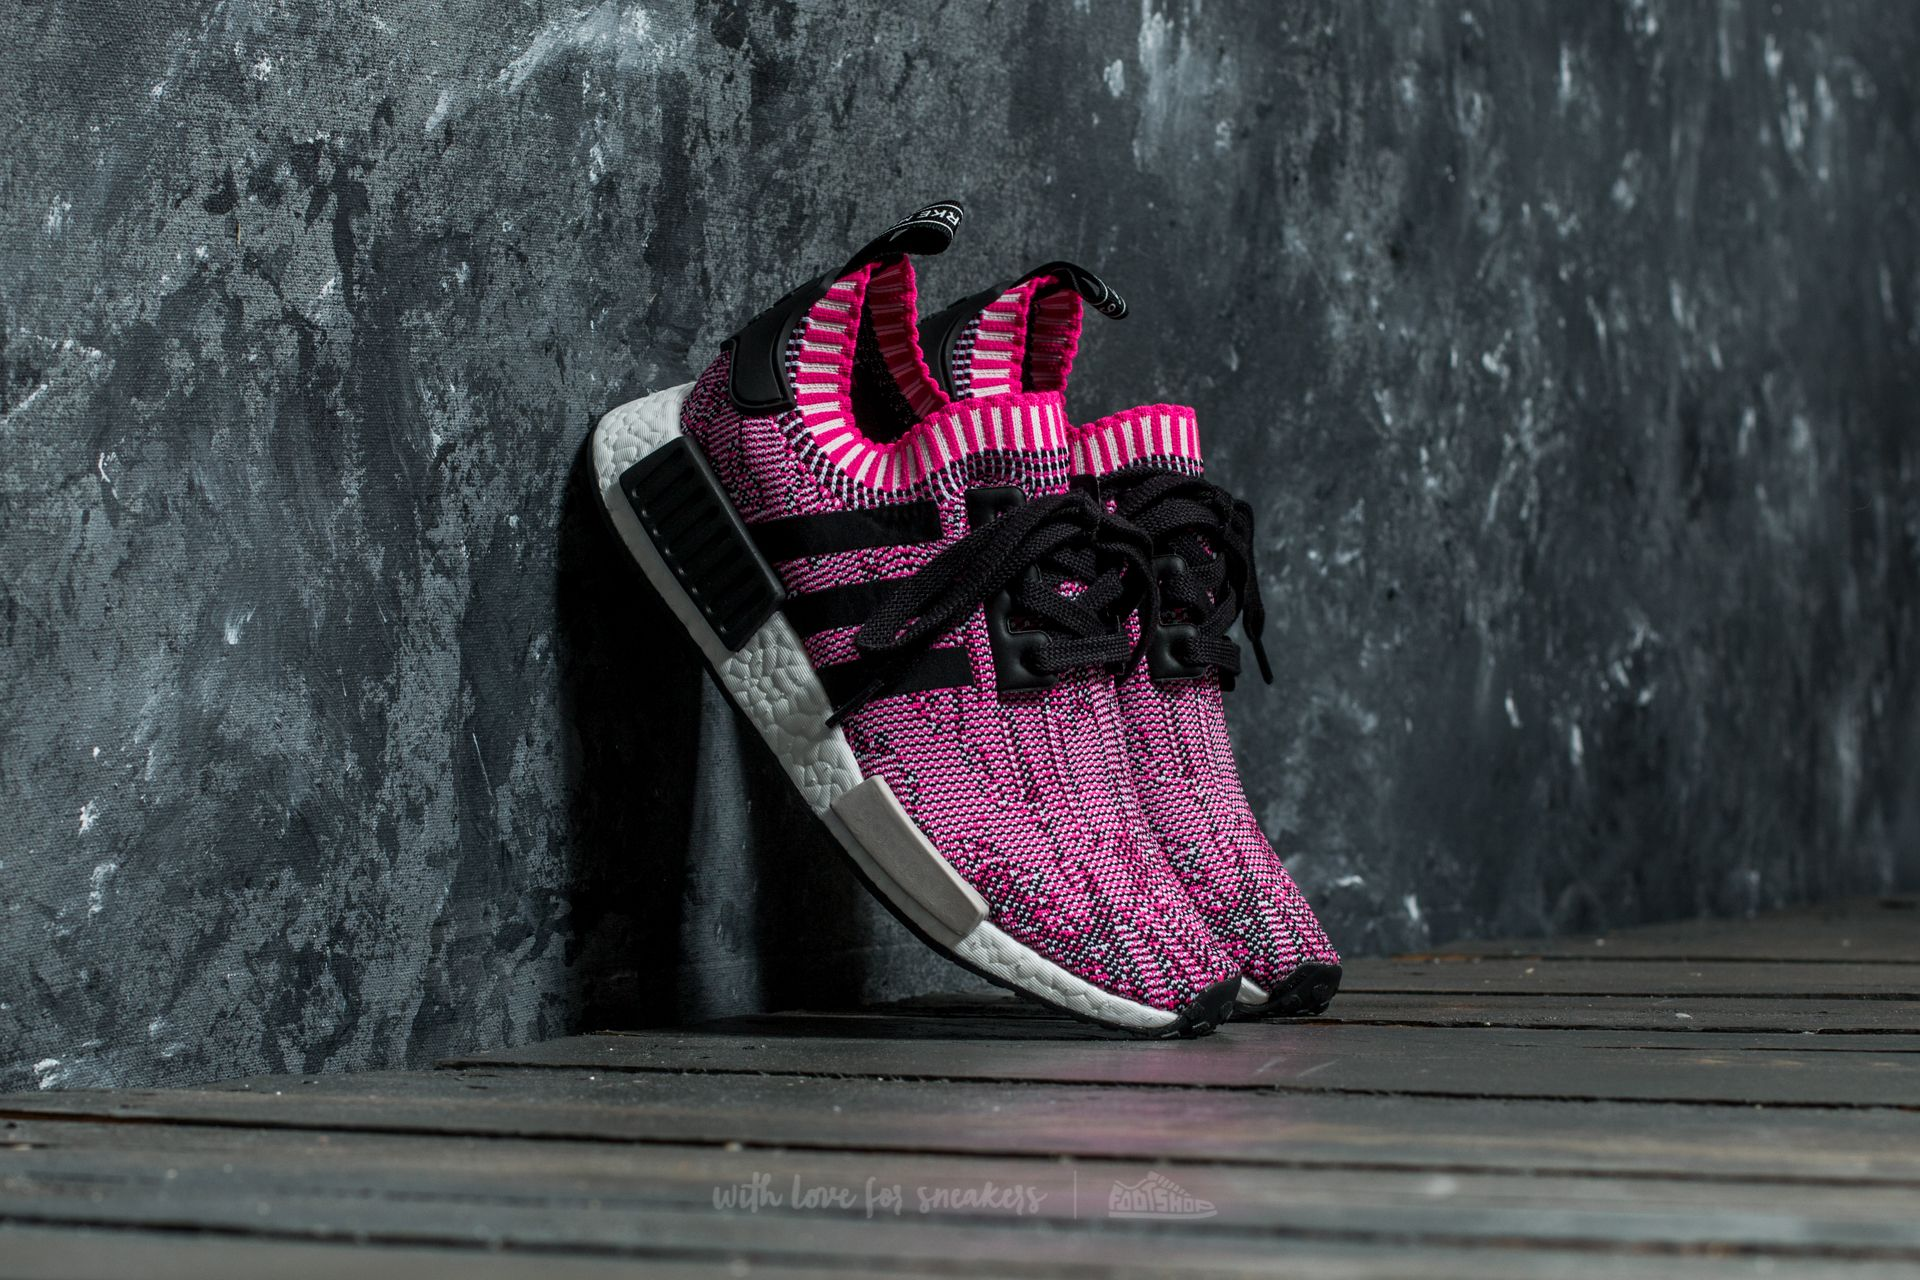 c71348f3e adidas NMD R1 W Primeknit. Shock Pink  Core Black  Running Ftw White